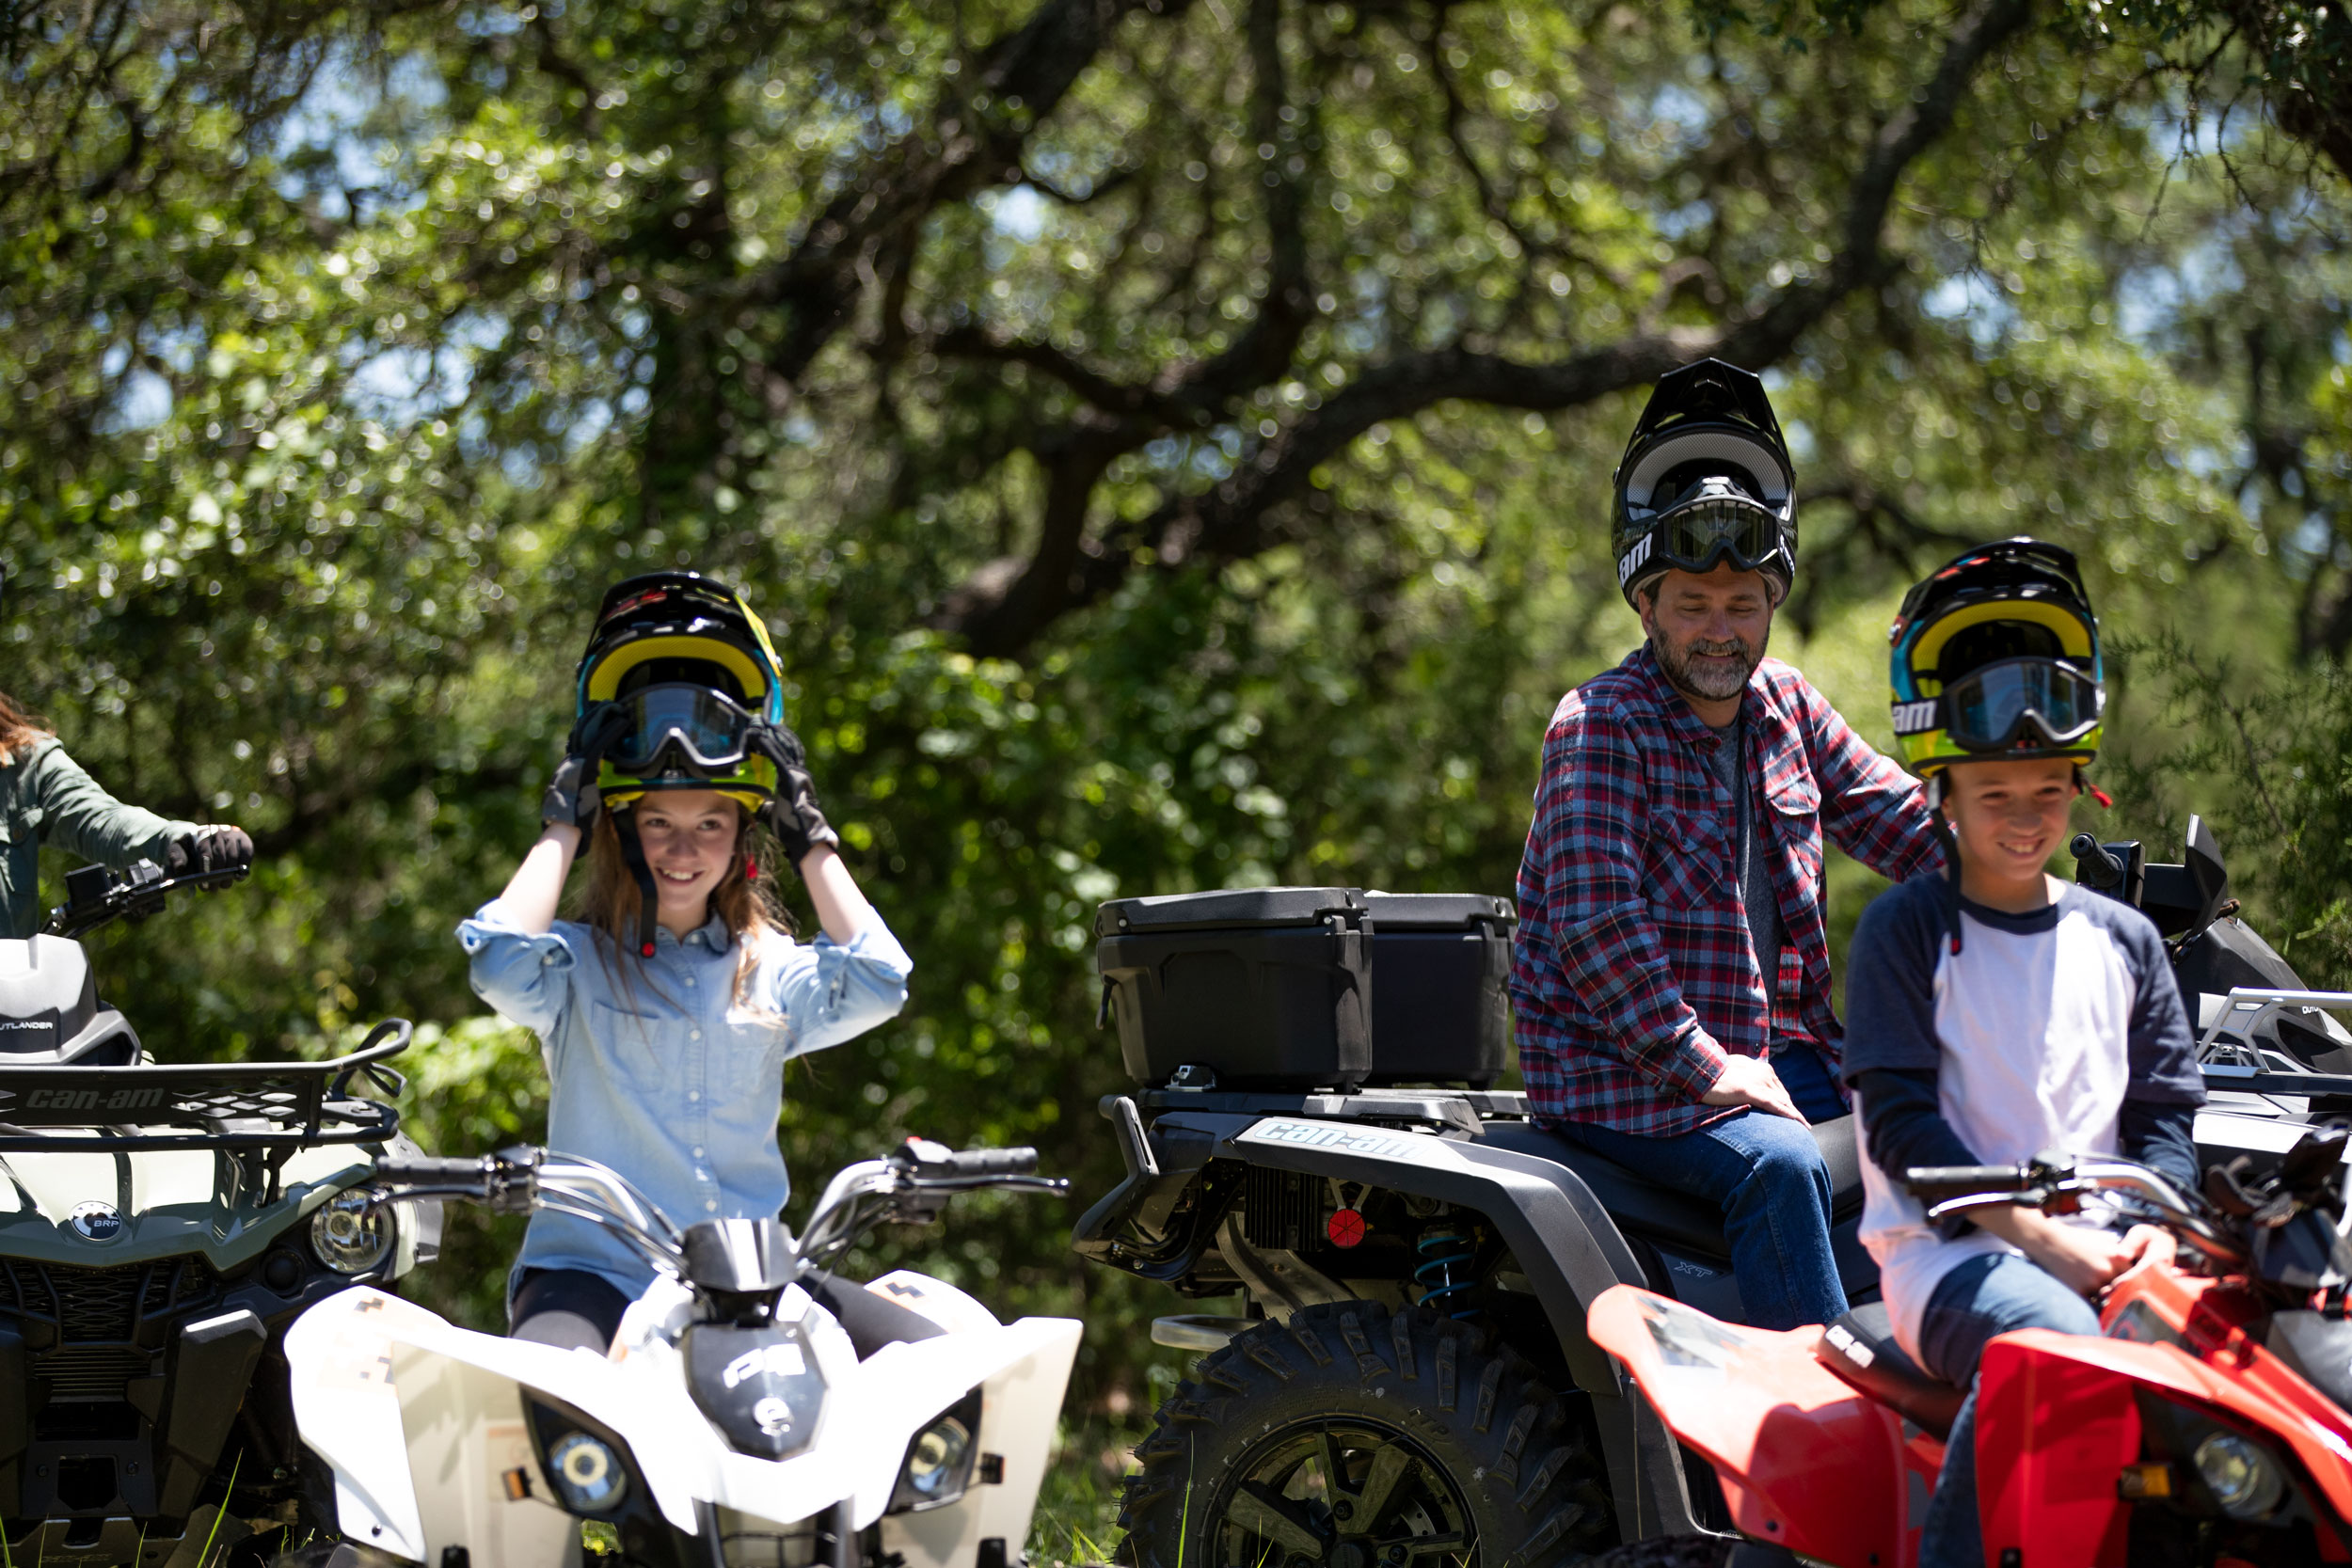 Family near their DS and Outlander ATV in the woodland